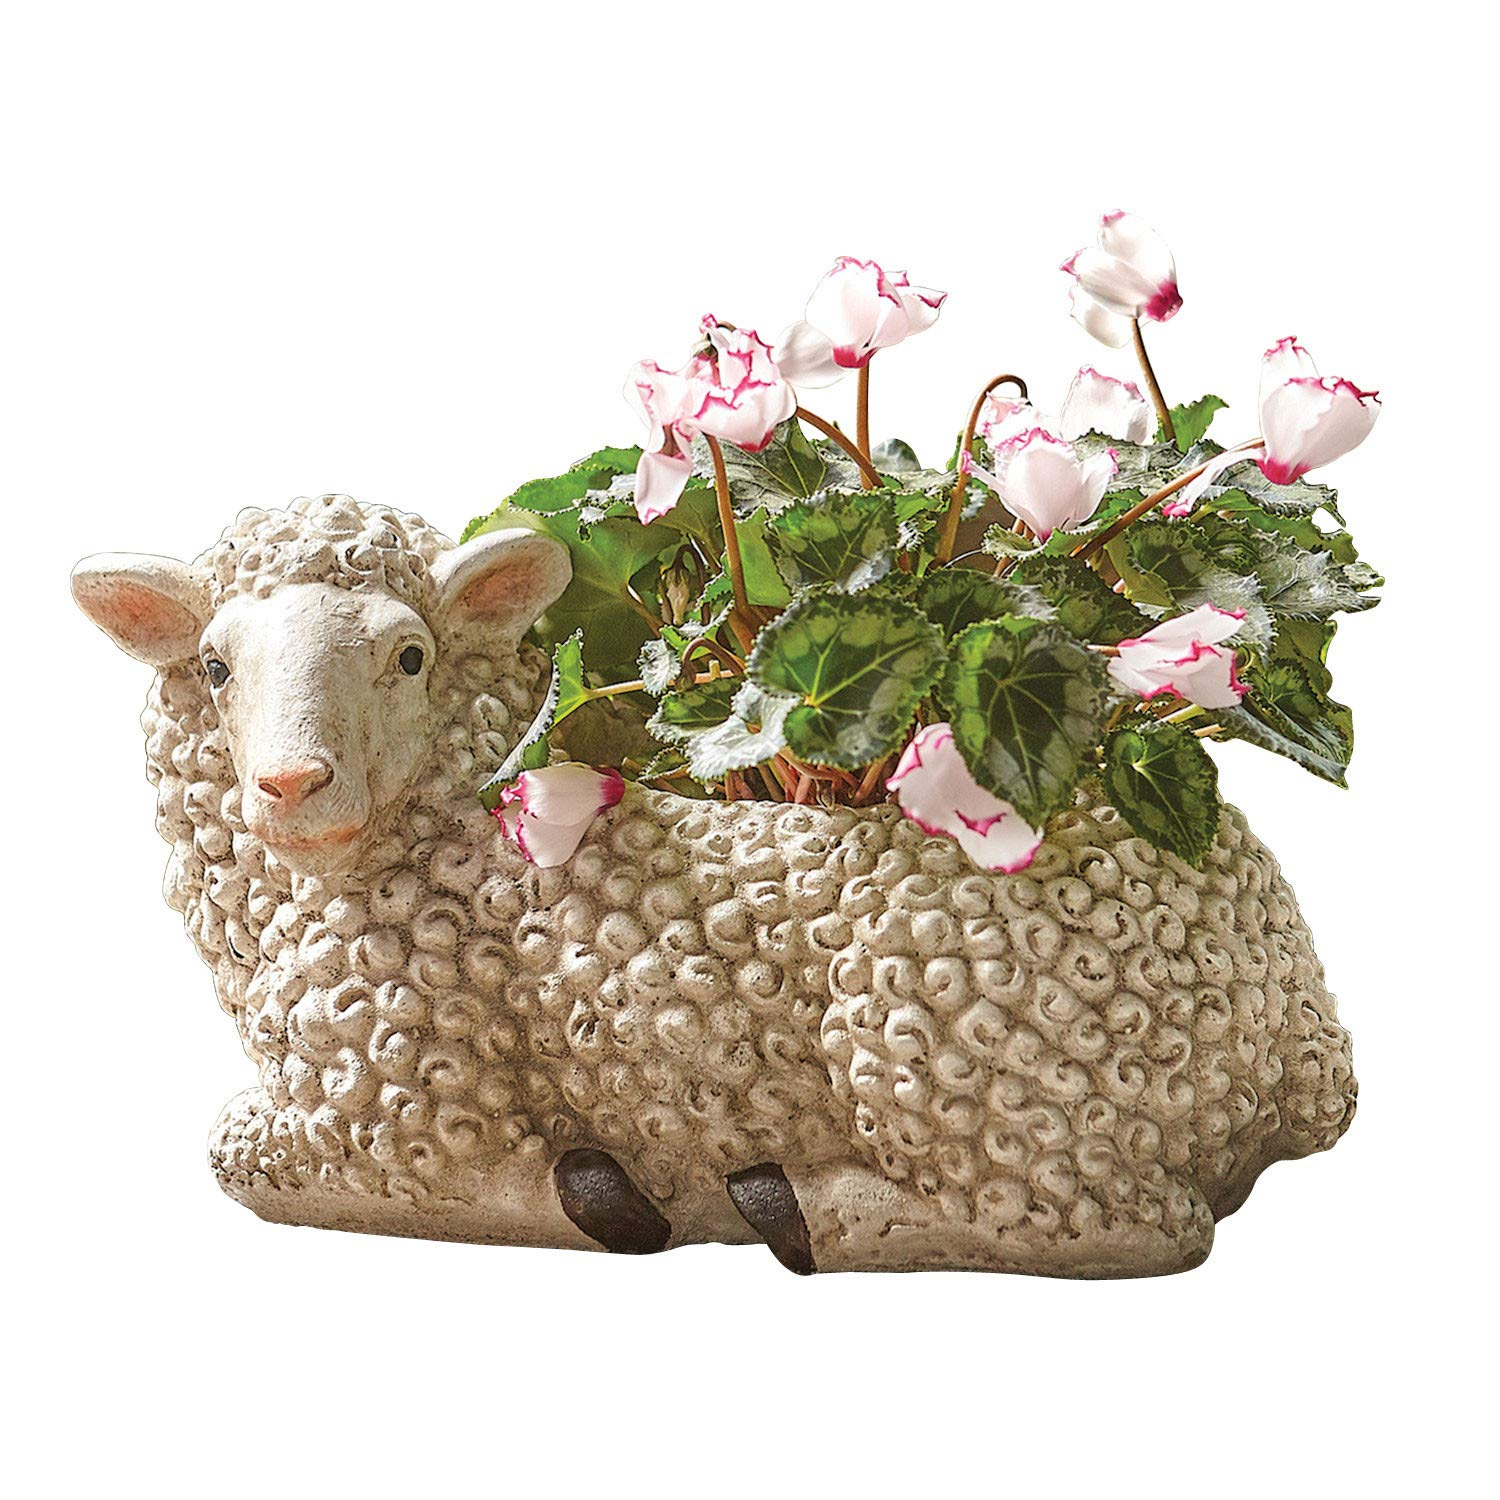 Art Artifact Woolly Sheep Planter Pot – Indoor Outdoor Flower Container